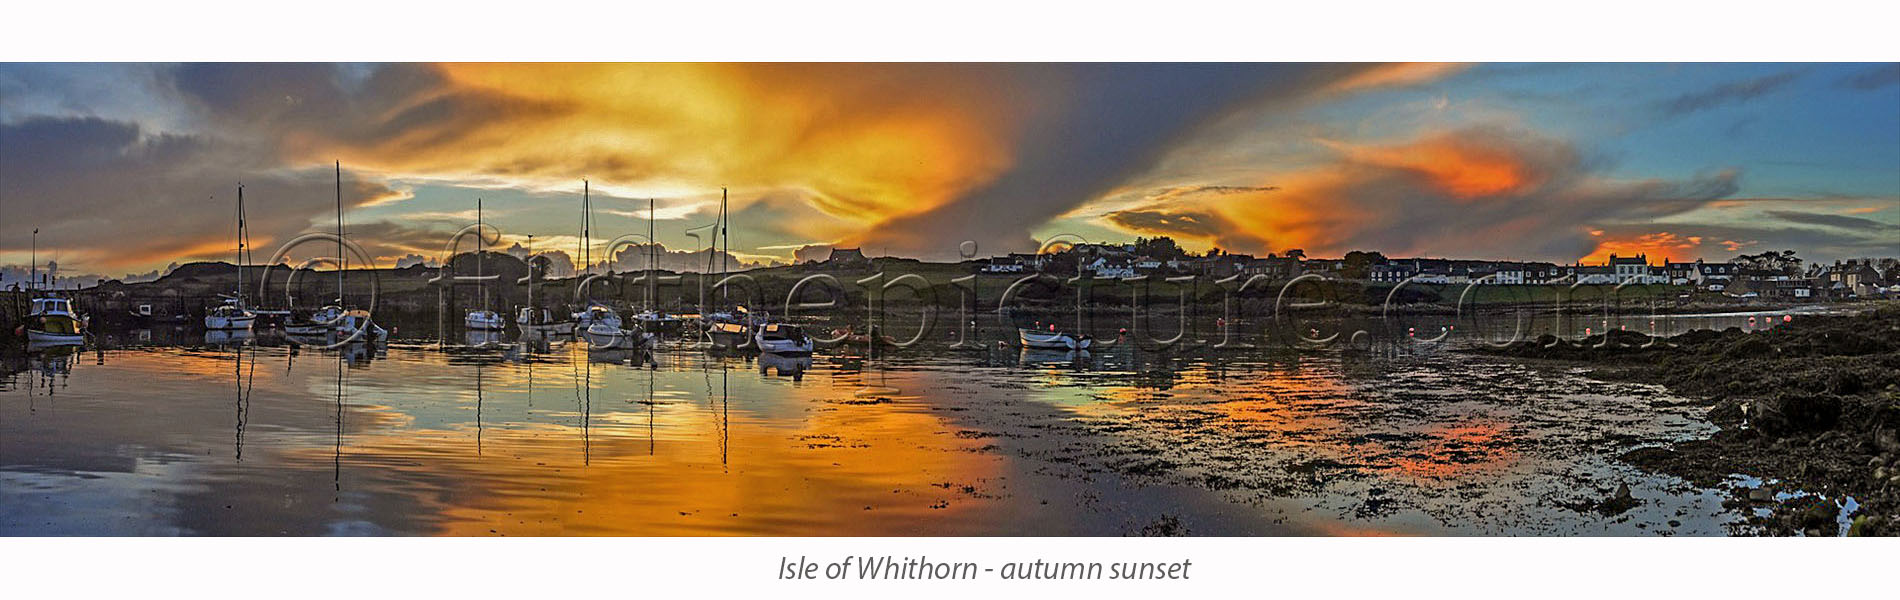 isle_of_whithorn_sunset.jpg